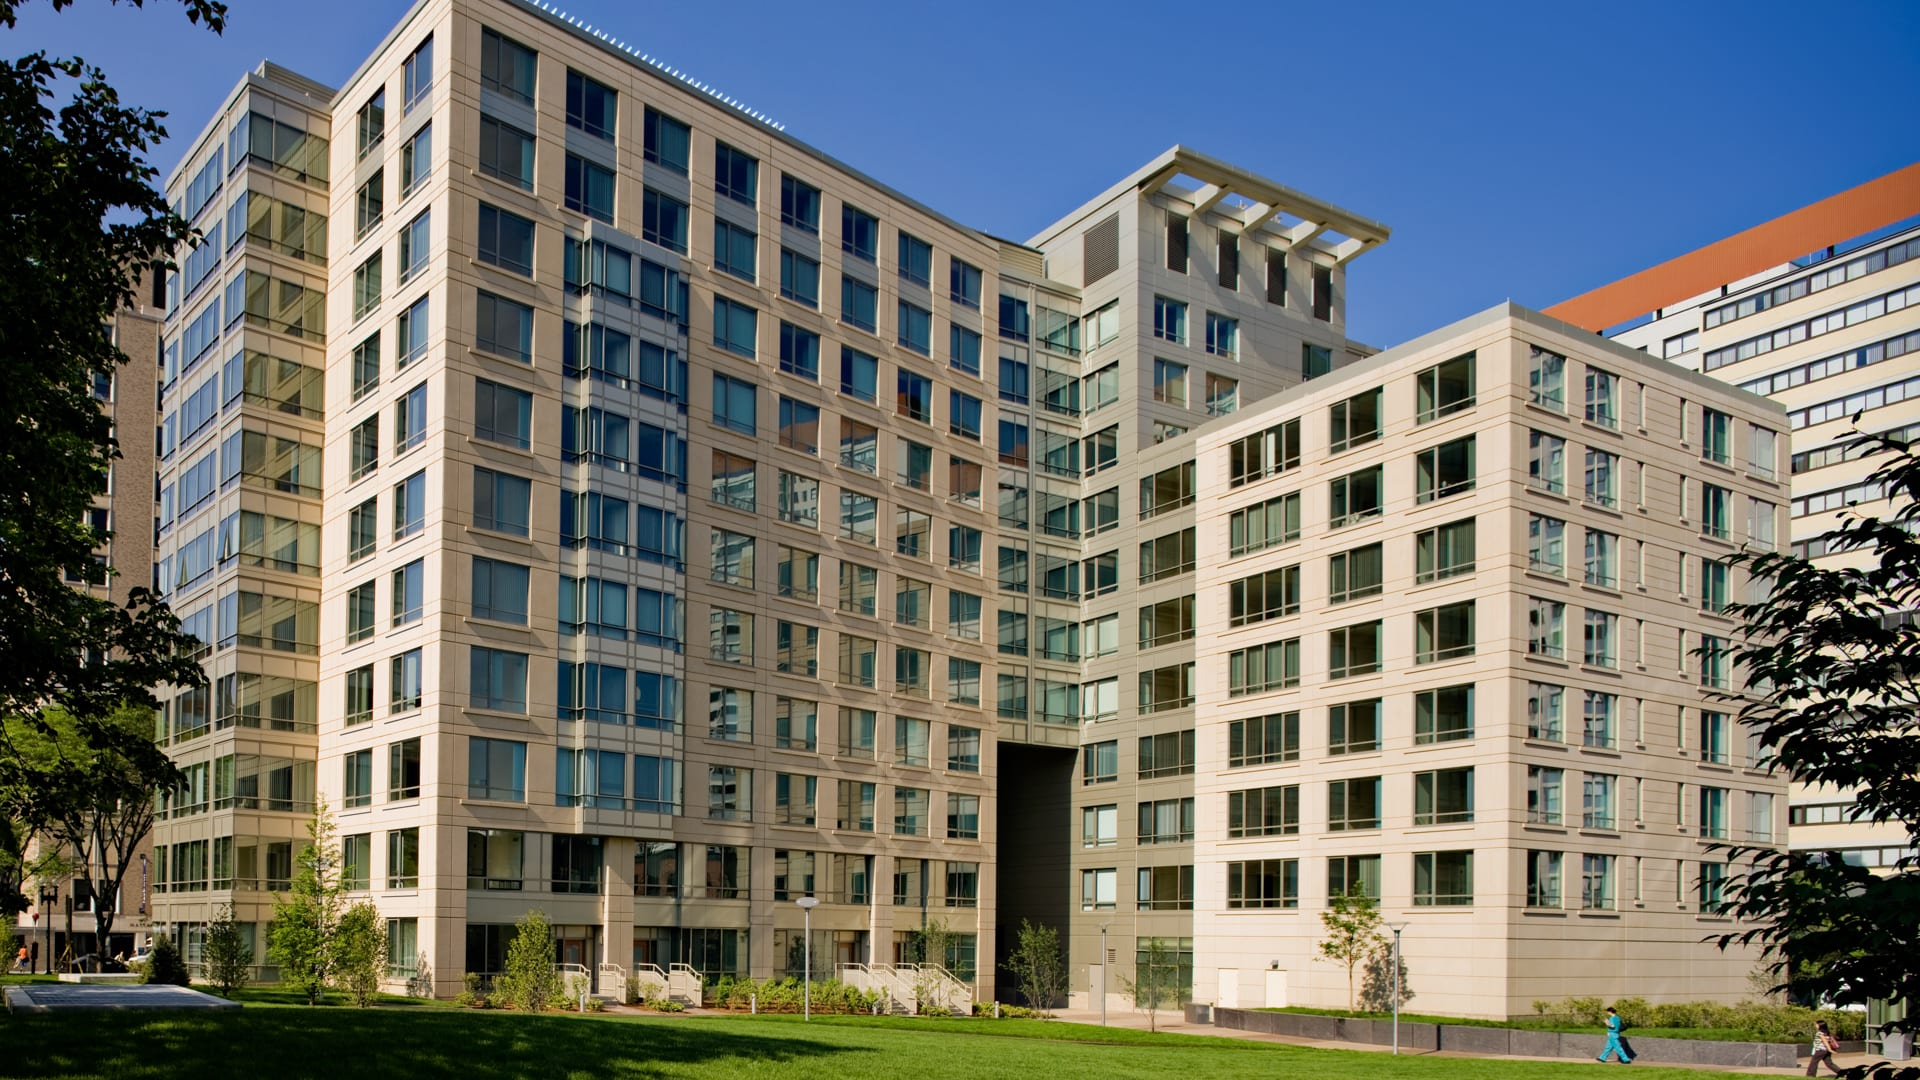 The West End Apartments-Asteria - Building - Apartments for Rent in Boston